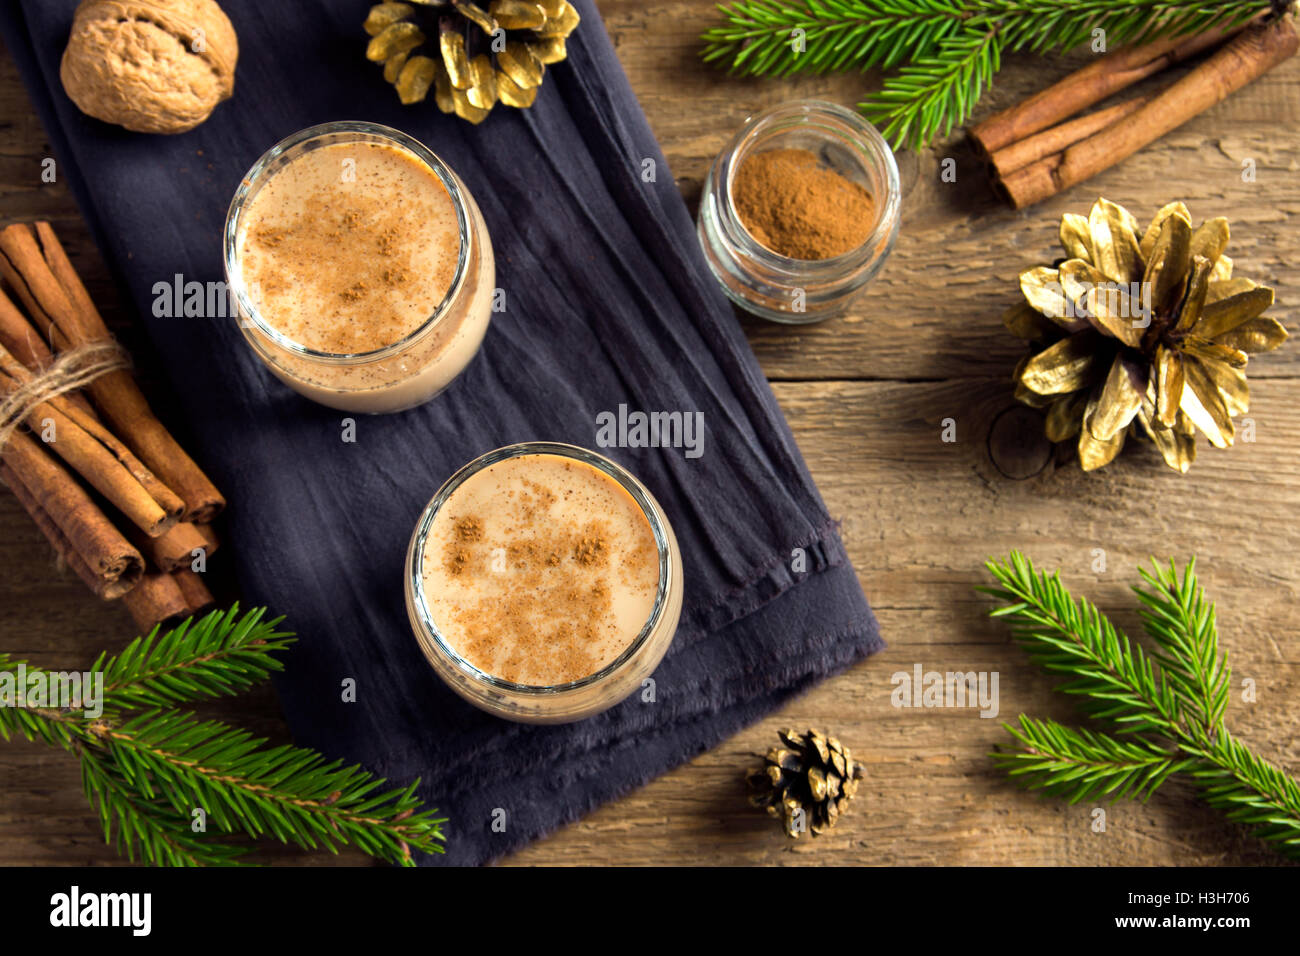 Eggnog with cinnamon in glasses over rustic wooden background with Christmas decor  - homemade traditional festive Stock Photo